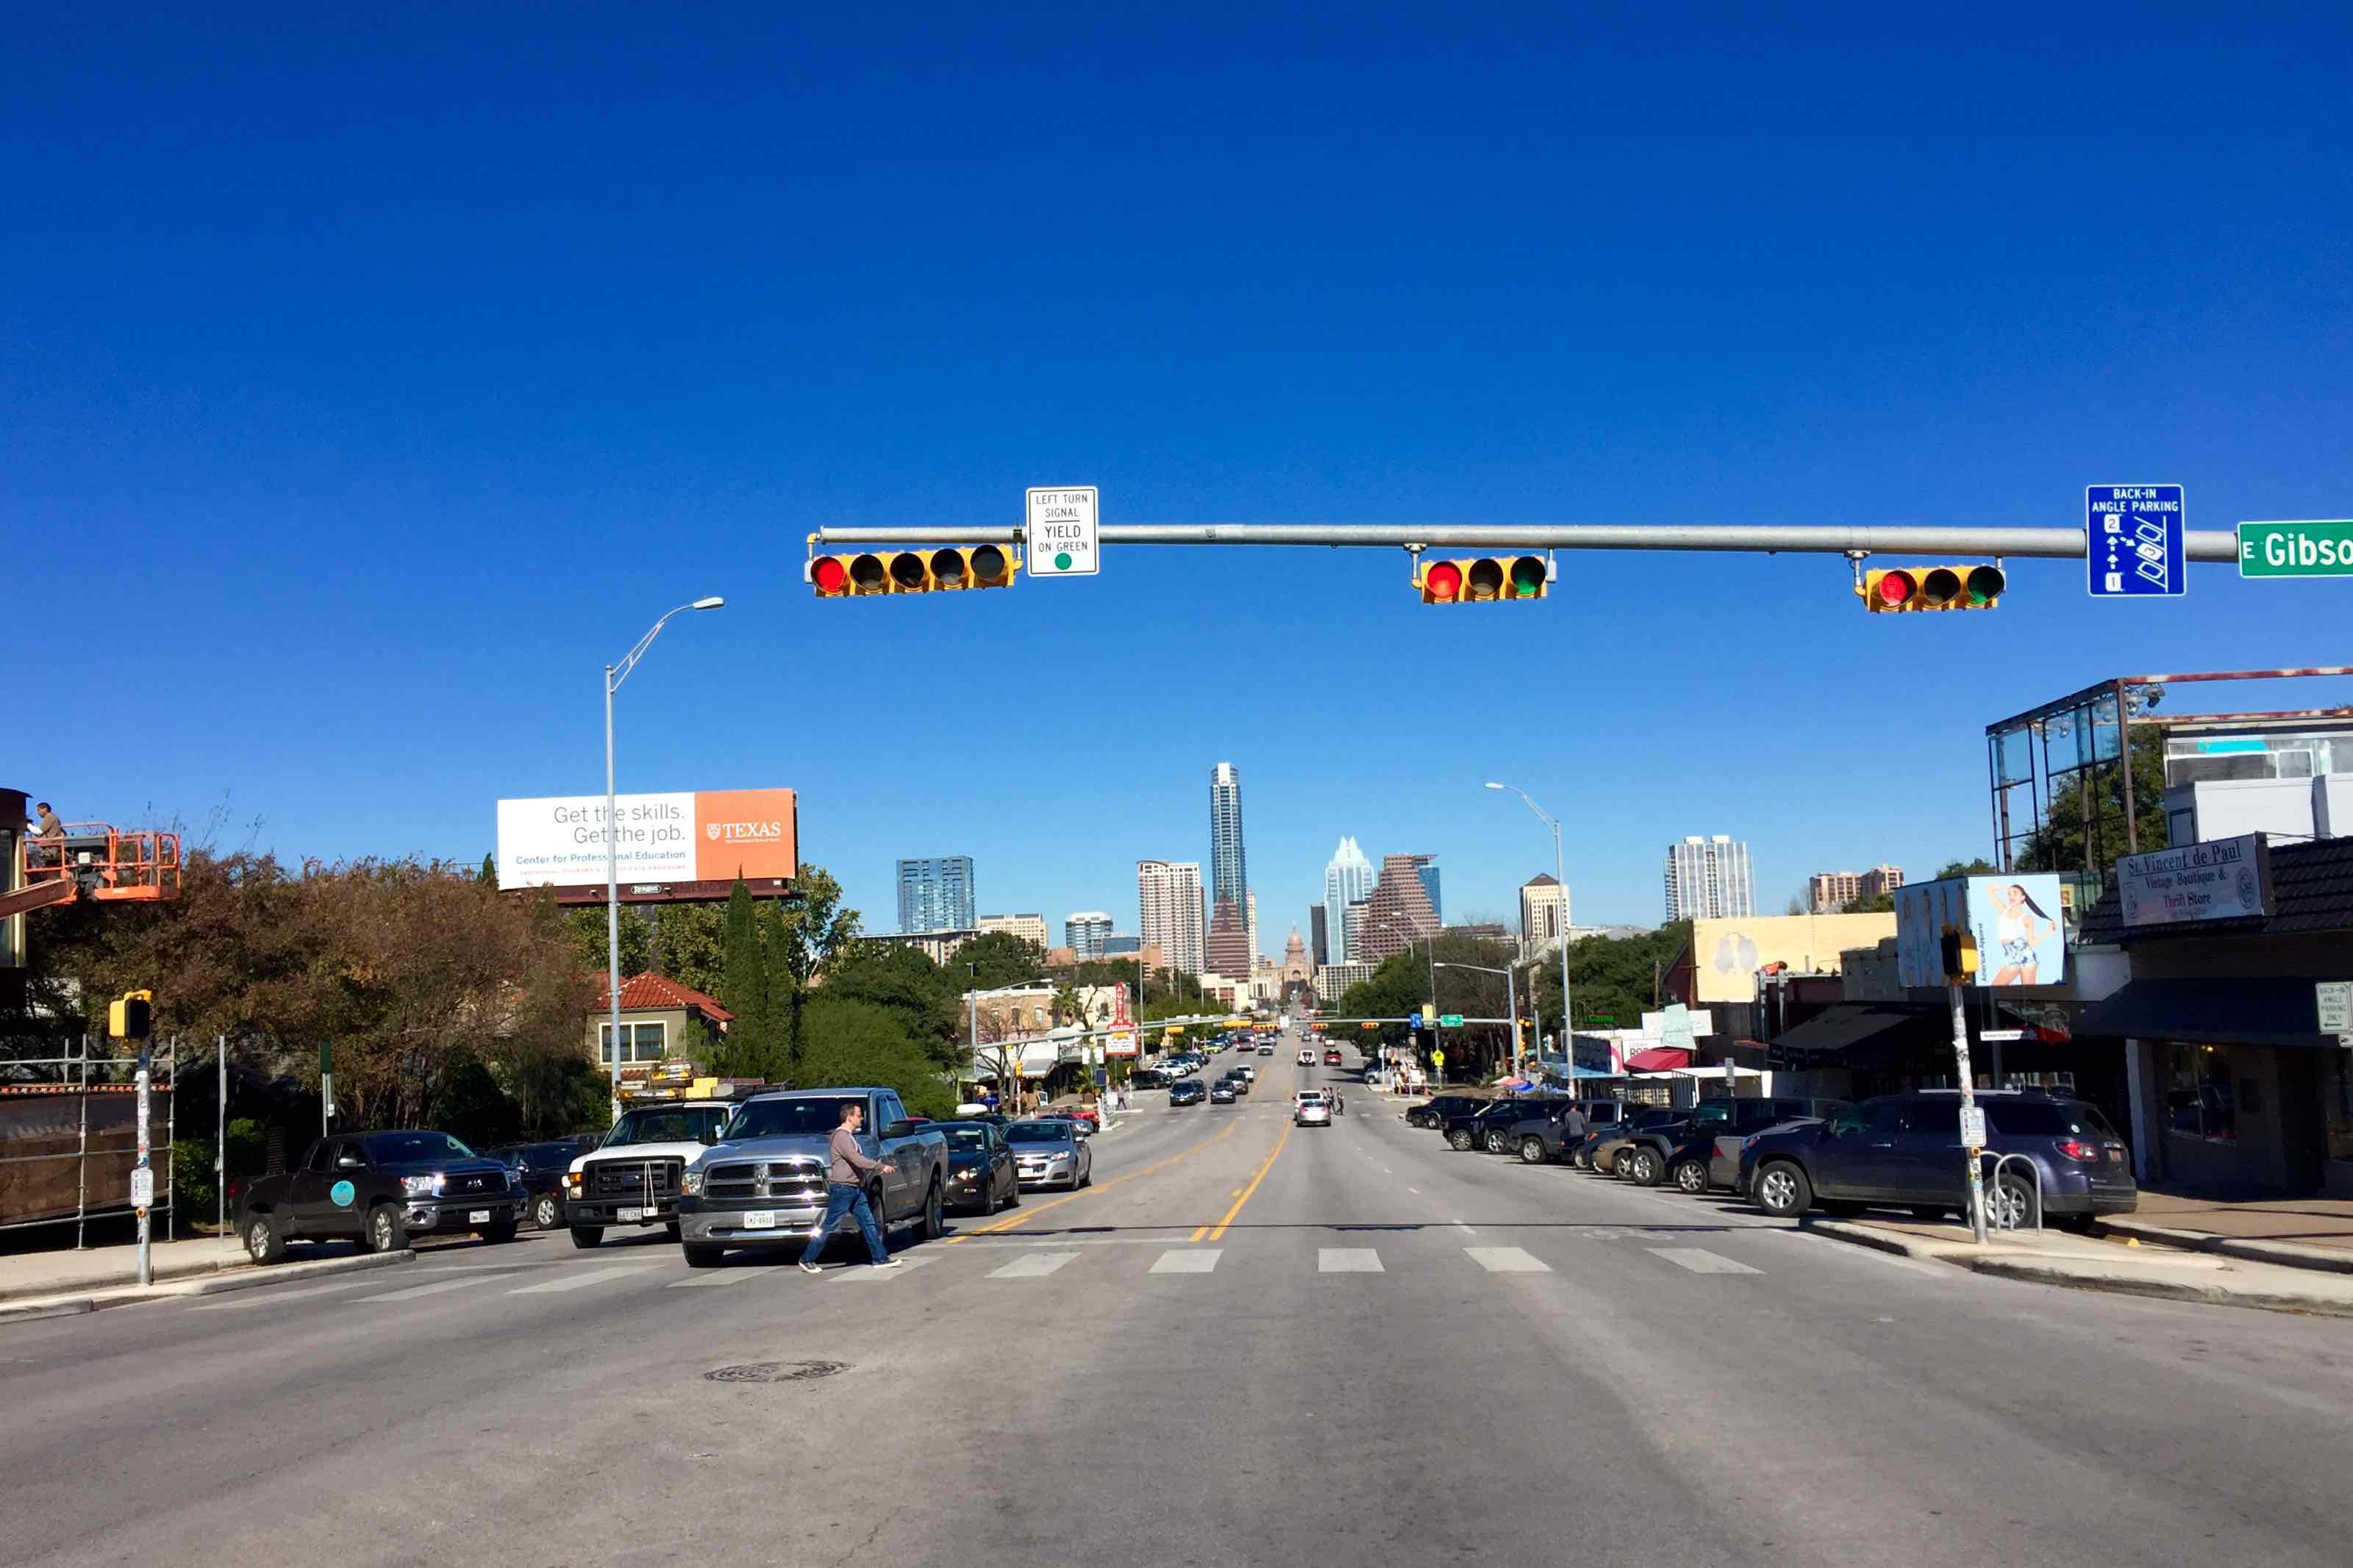 Street view of South Congress during the day.